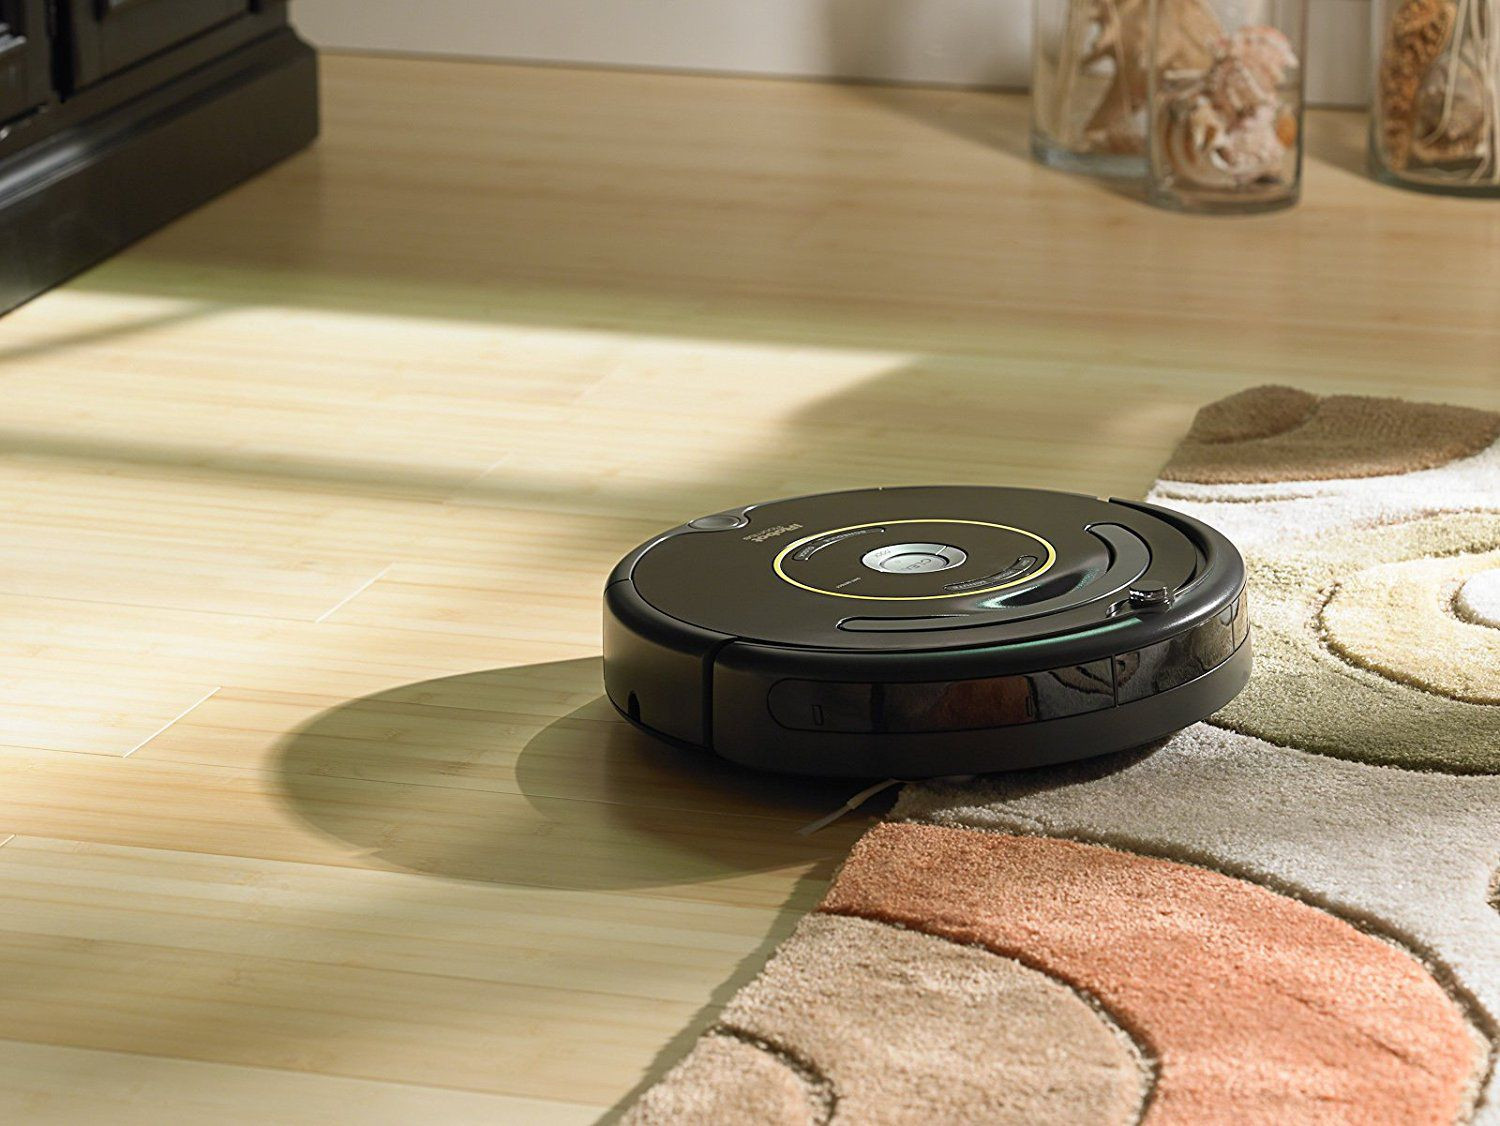 ebay hardwood flooring tools of the 7 best robotic vacuums to buy in 2018 with 71avnpfjgtl sl1500 59e0fb93519de2001193e441